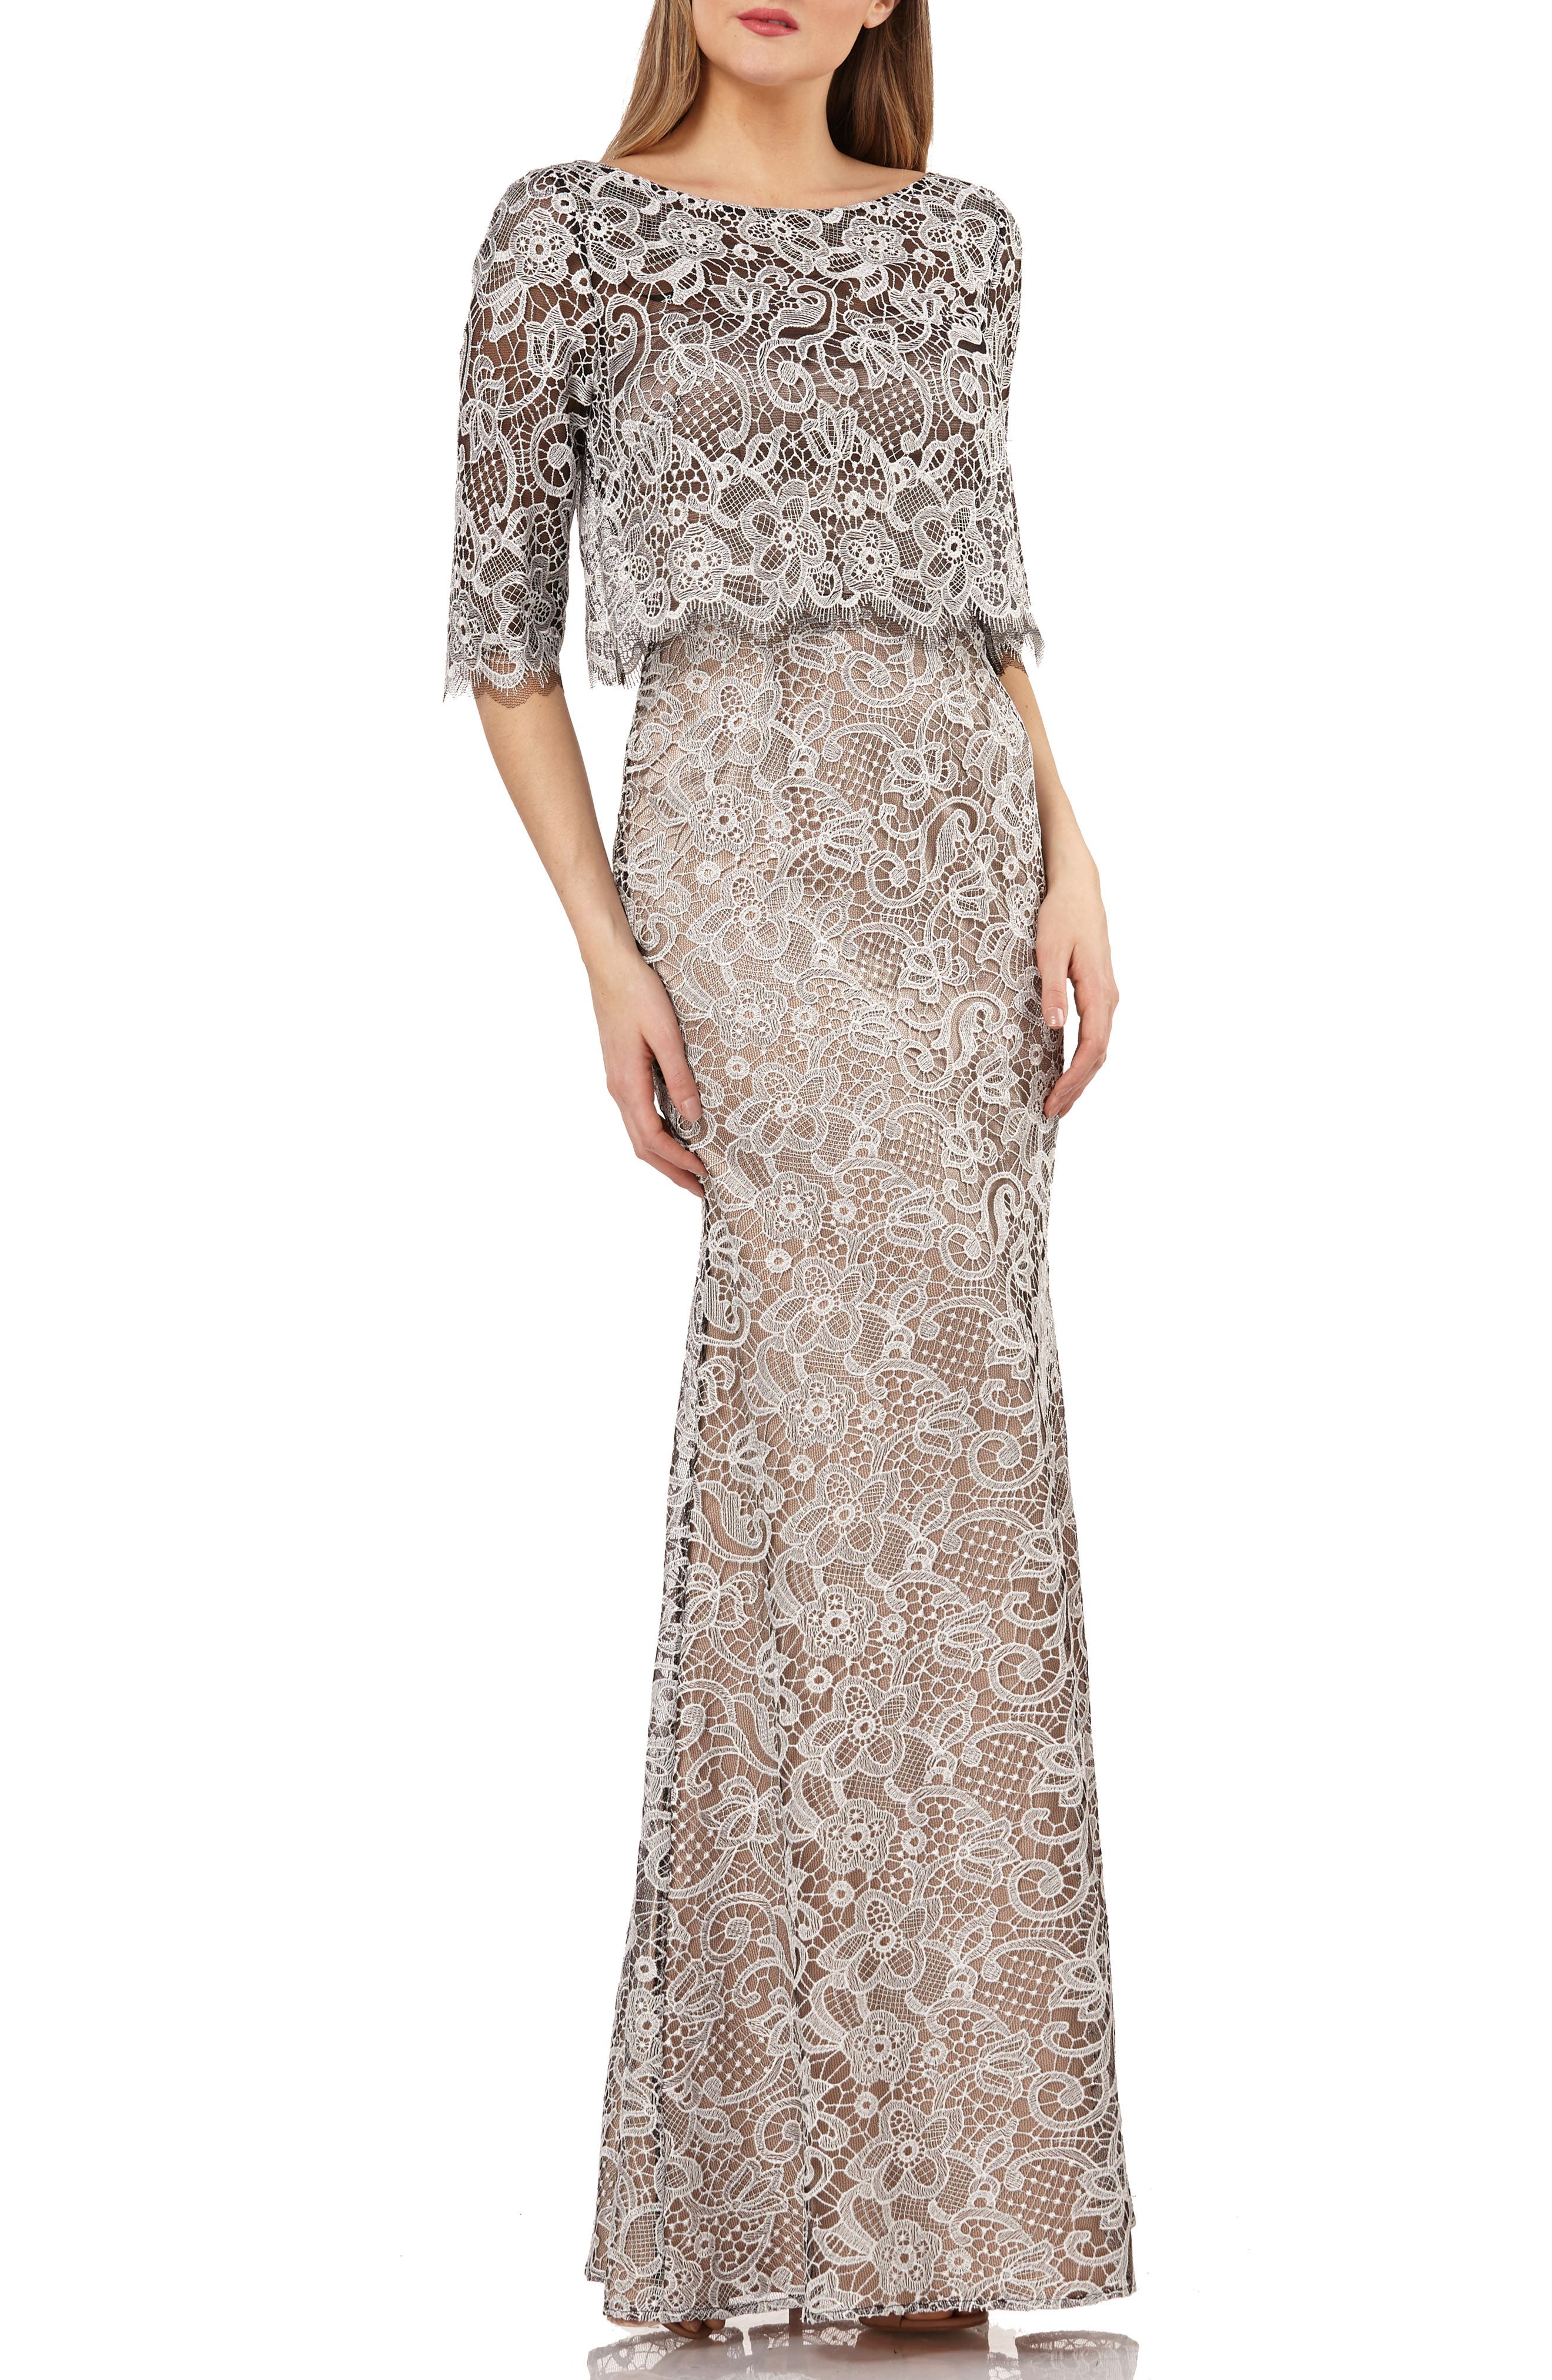 Js Collection Embroidered Lace Scallop Trim Evening Dress